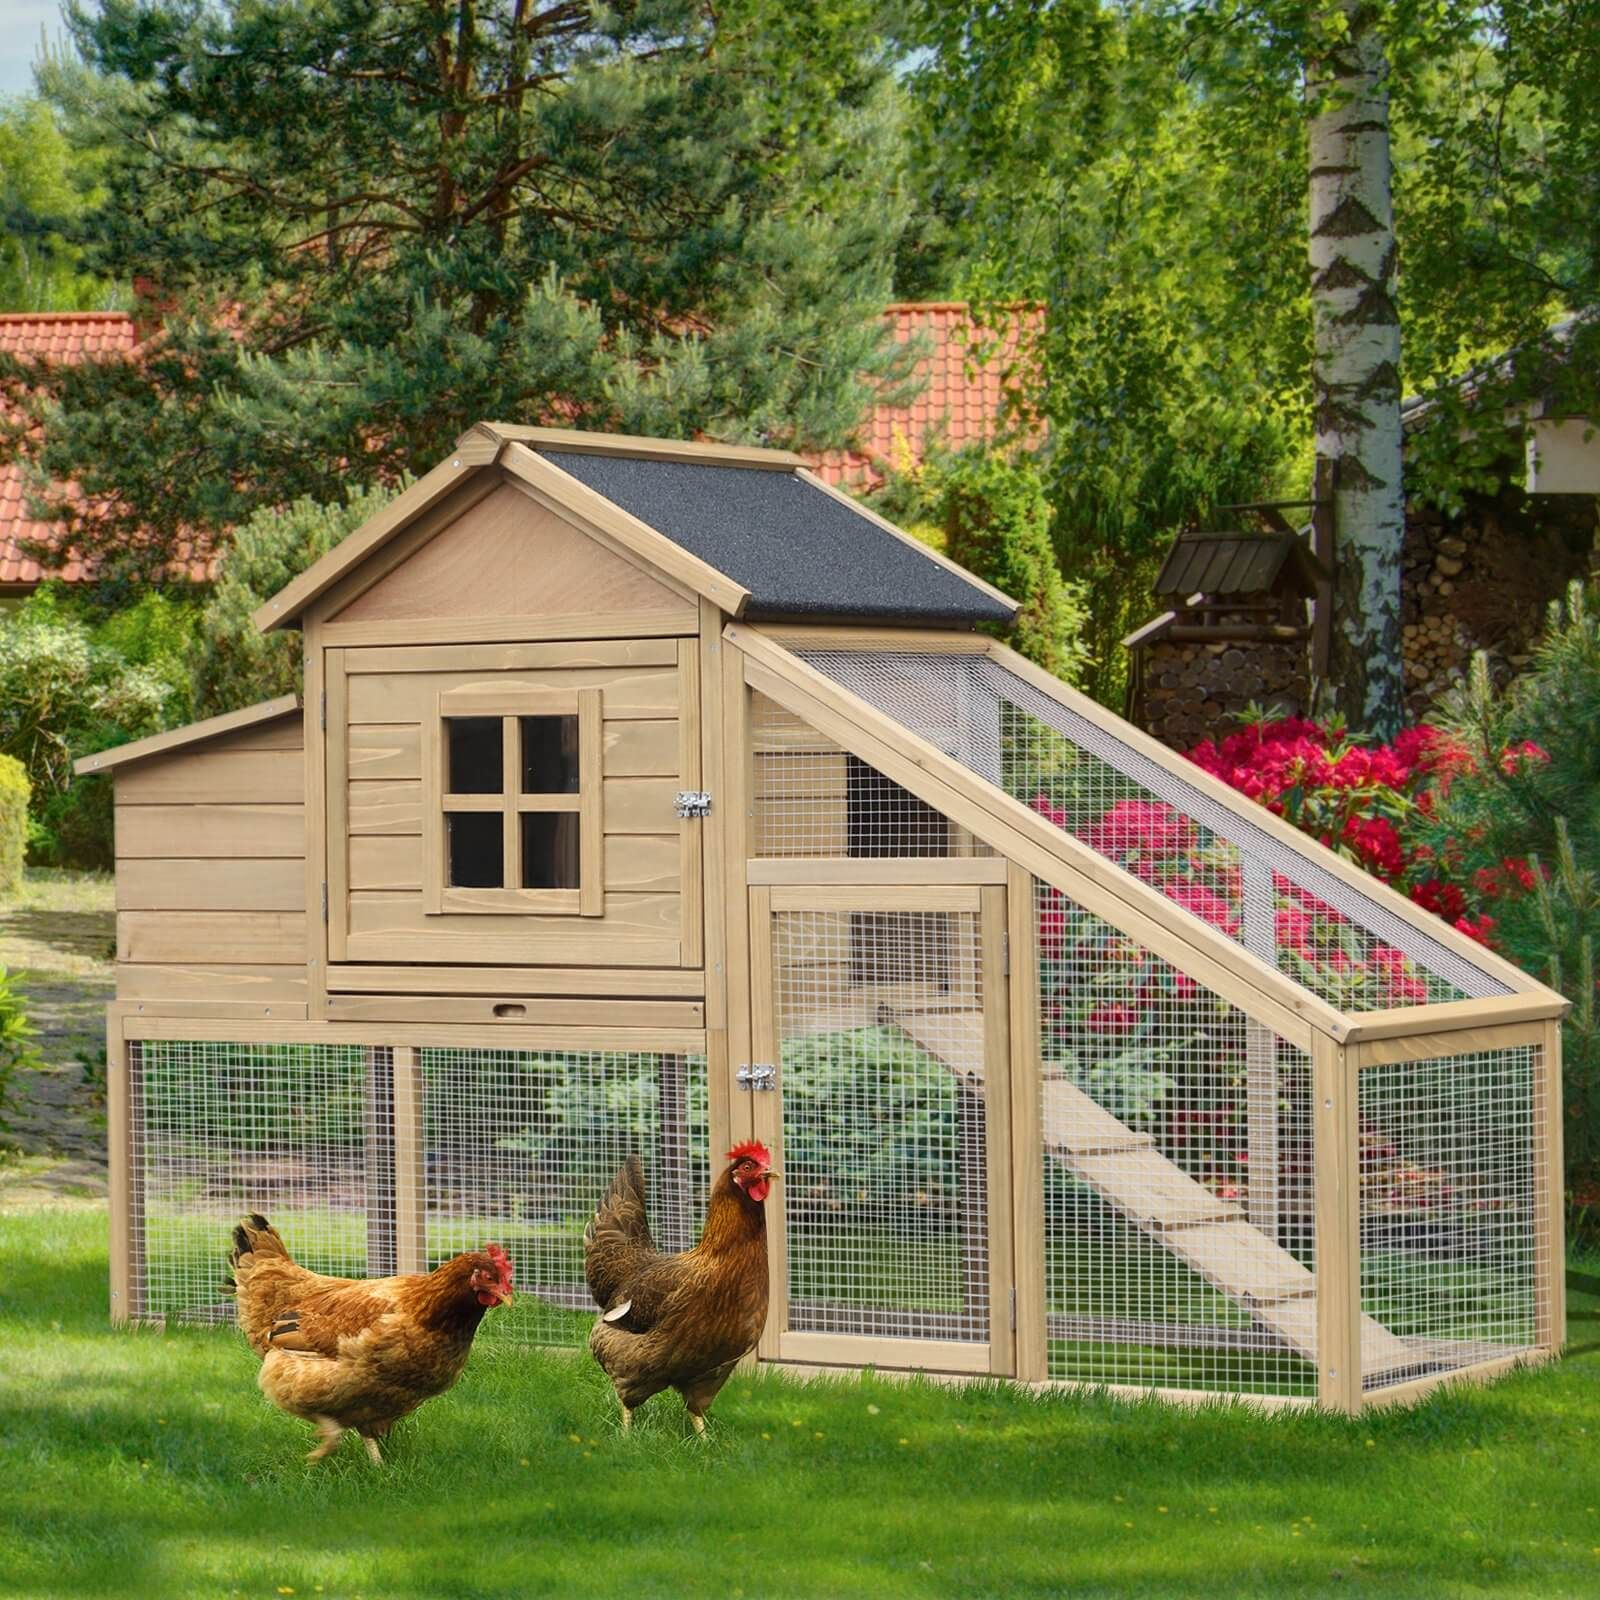 50 Beautiful Diy Chicken Coop Ideas You Can Actually Build Engineering Discoveries Chickens Backyard Backyard Chicken Coops Chicken Diy Backyard chicken house designs